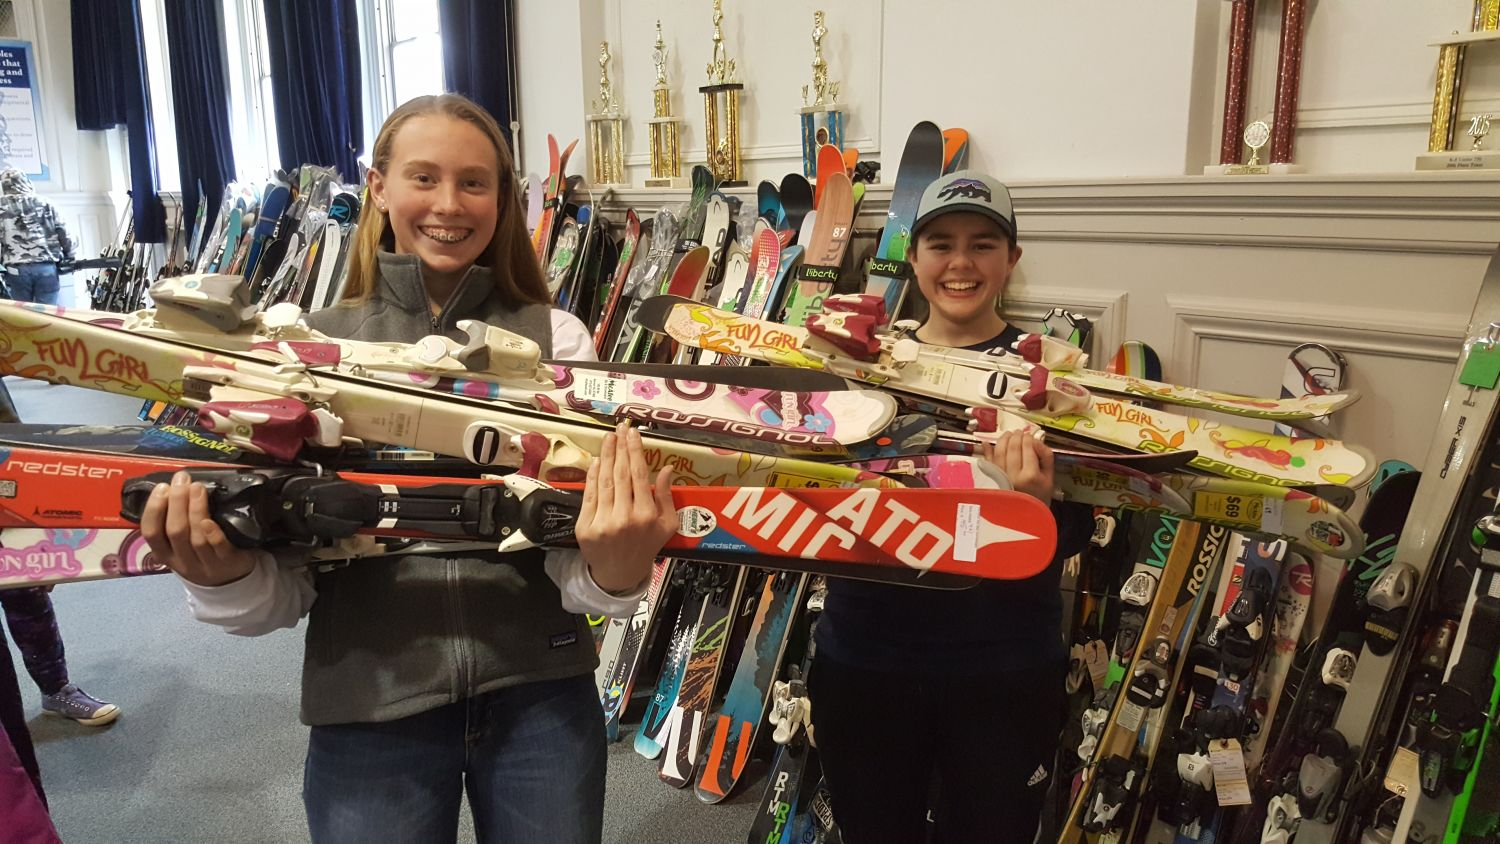 Cora & Claudia working the ski swap